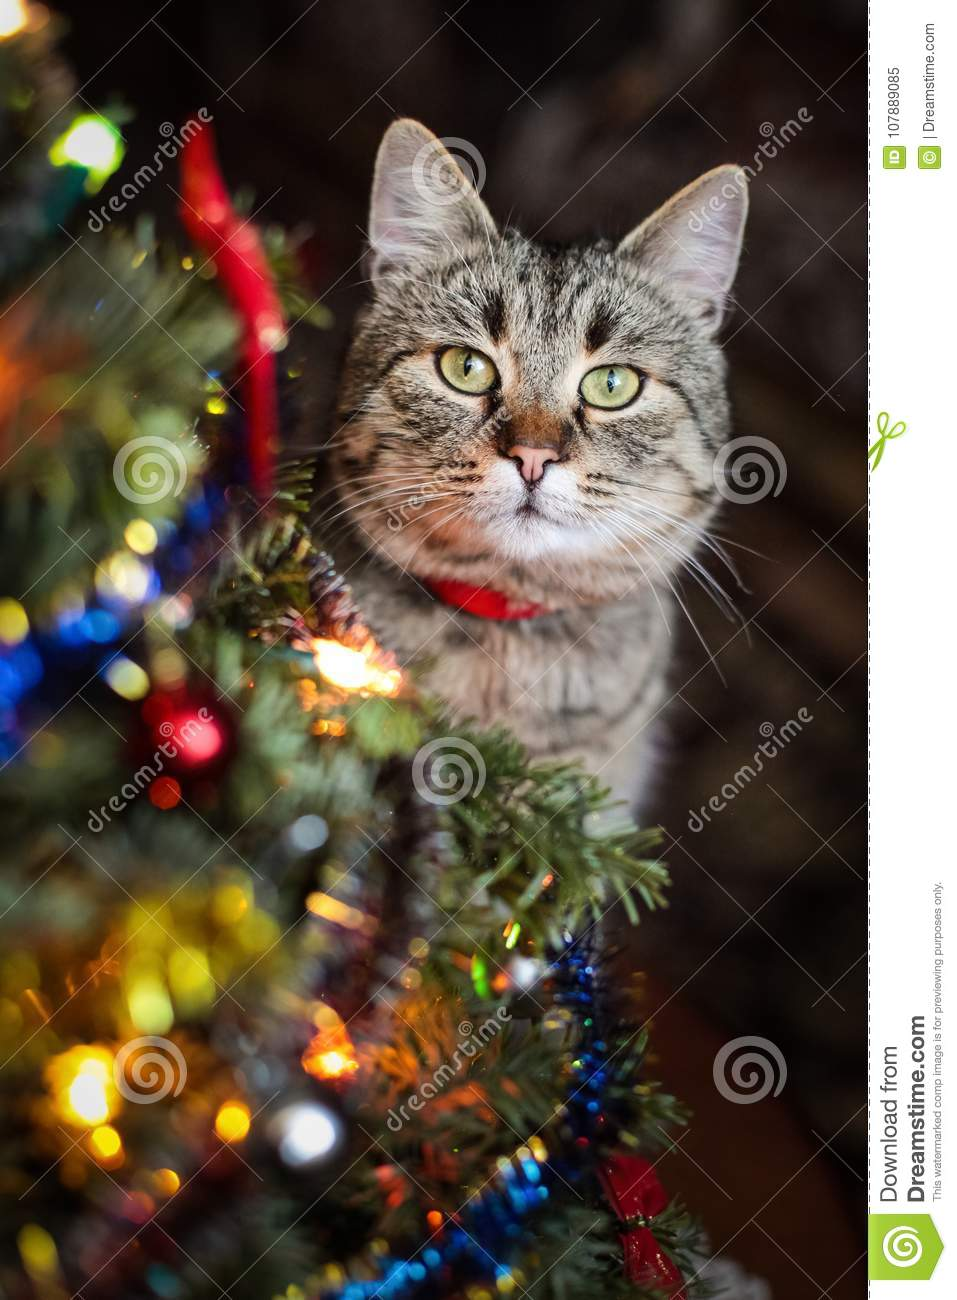 cat with christmas presents and decorations for a christmas tree